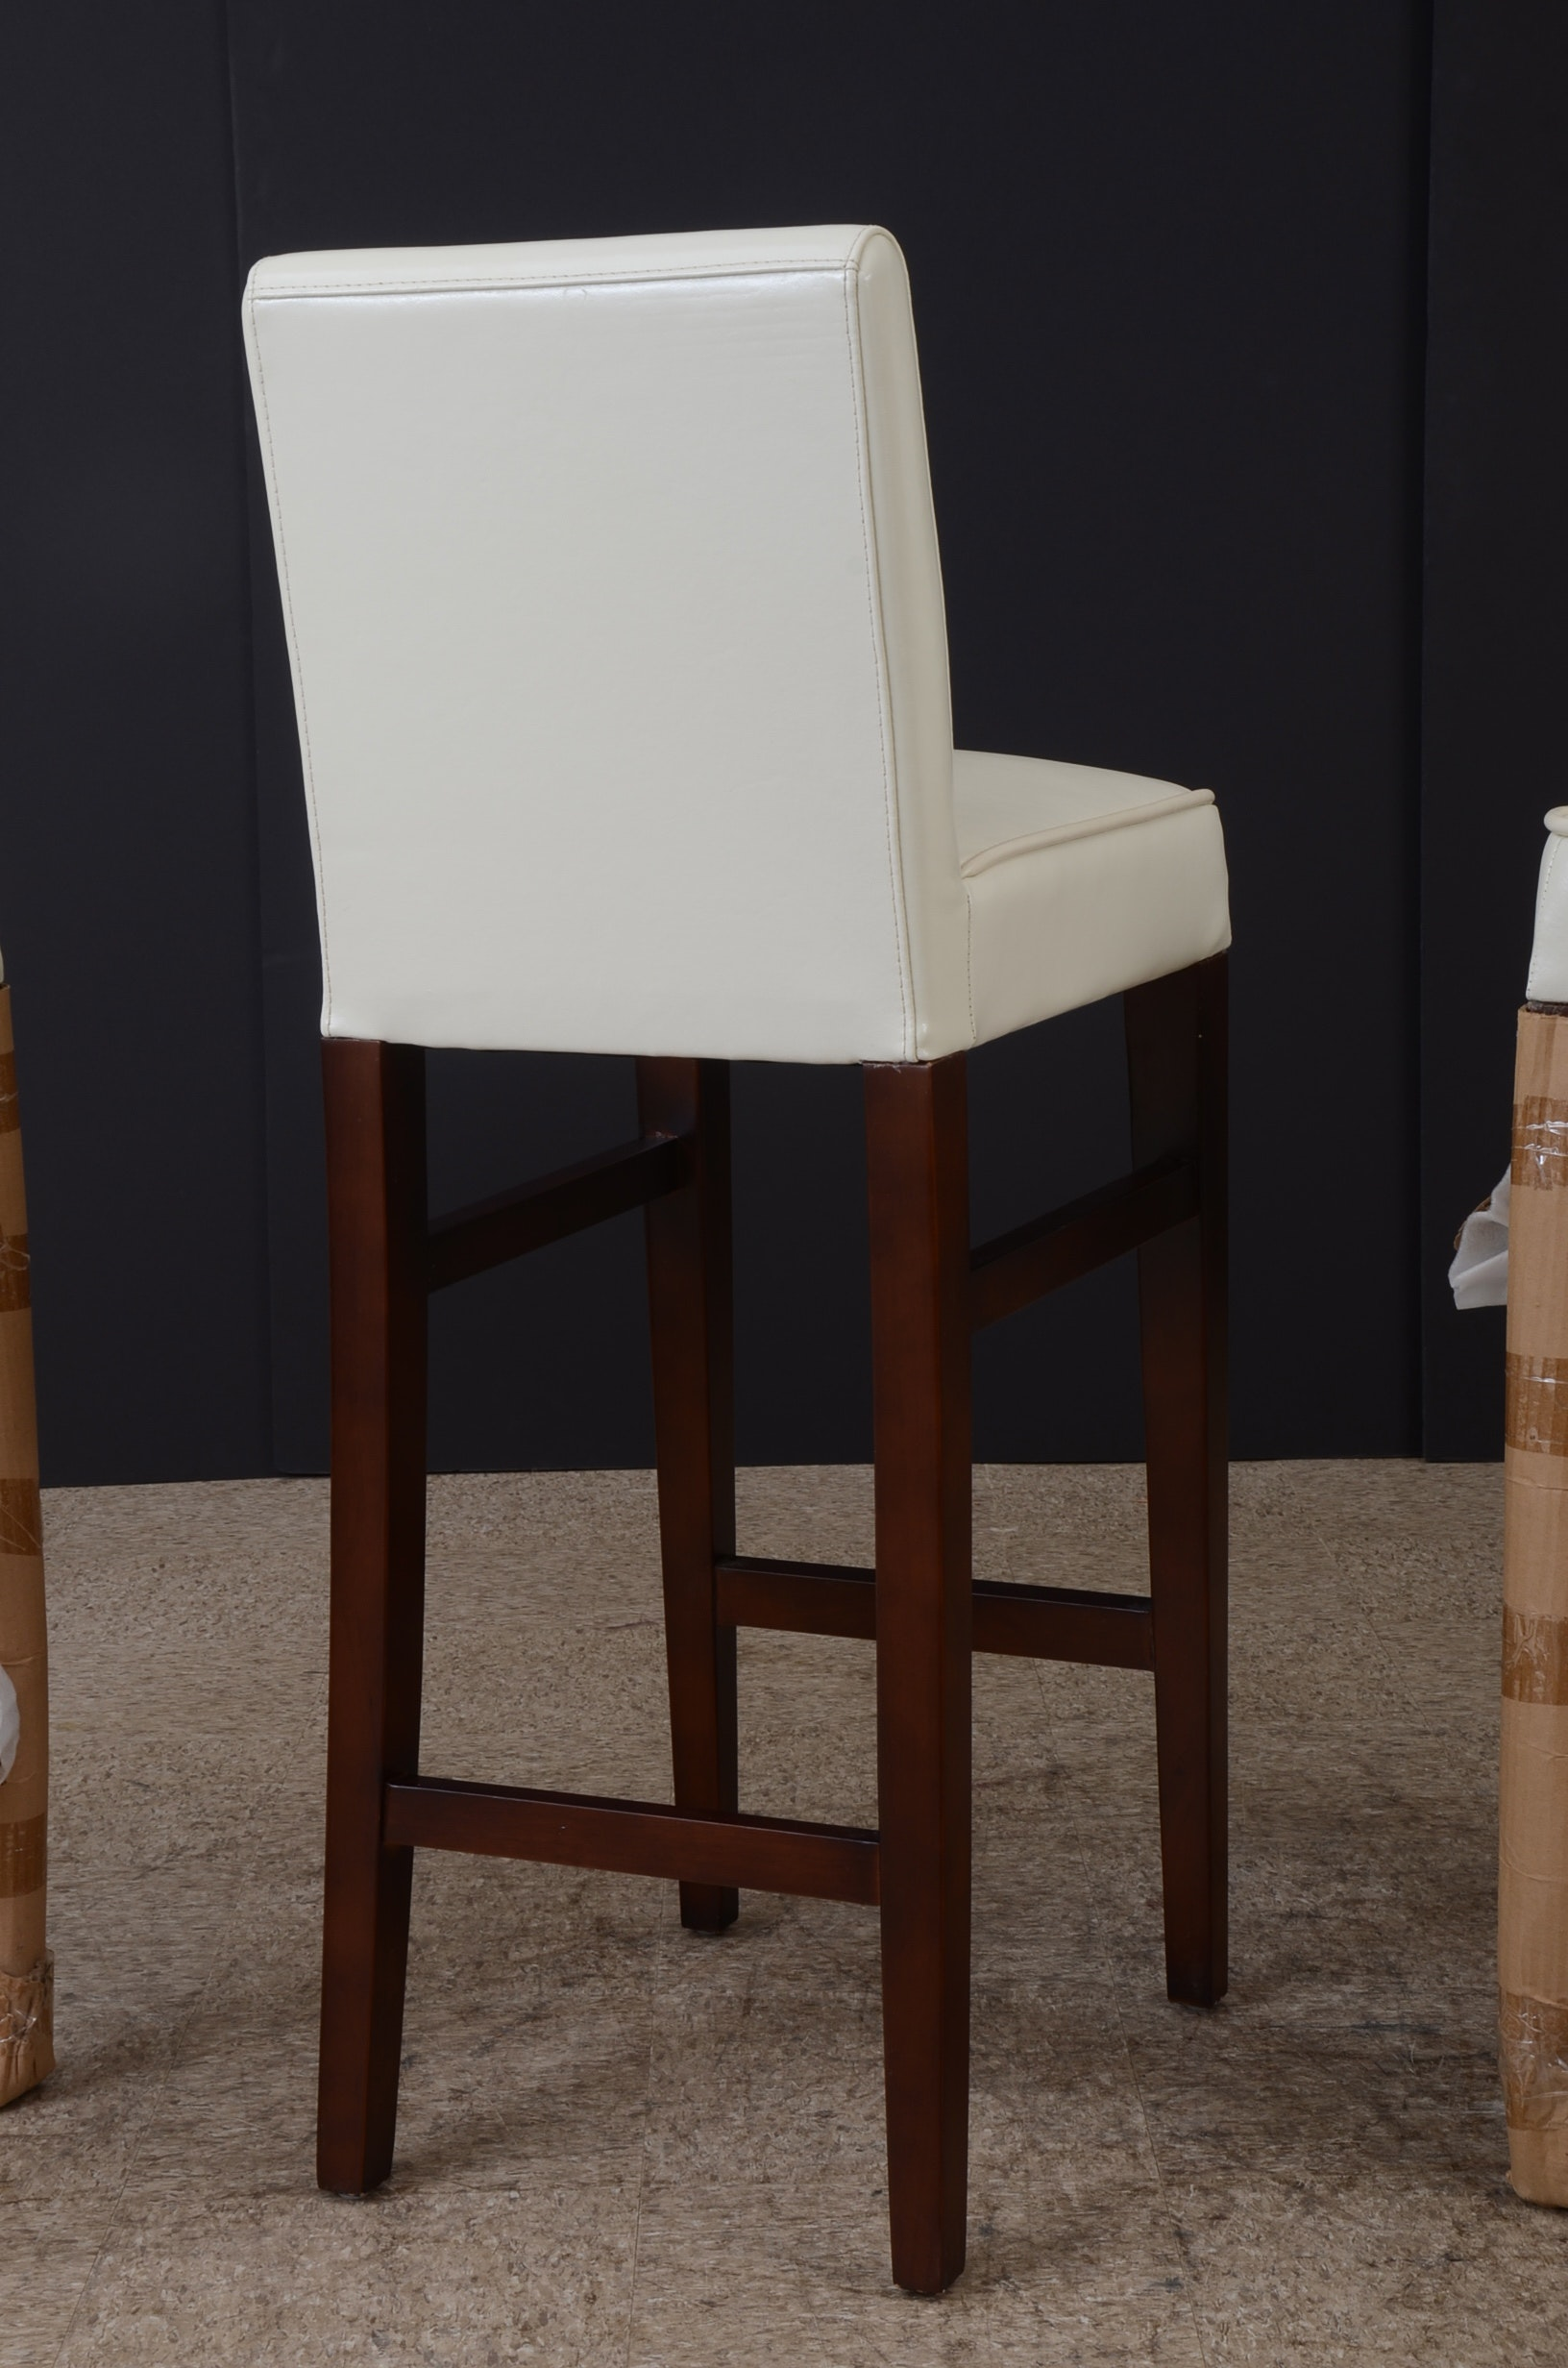 Set of Three White Leather Bar Stools EBTH : DSC9902jpgixlibrb 10 from www.ebth.com size 596 x 900 jpeg 71kB